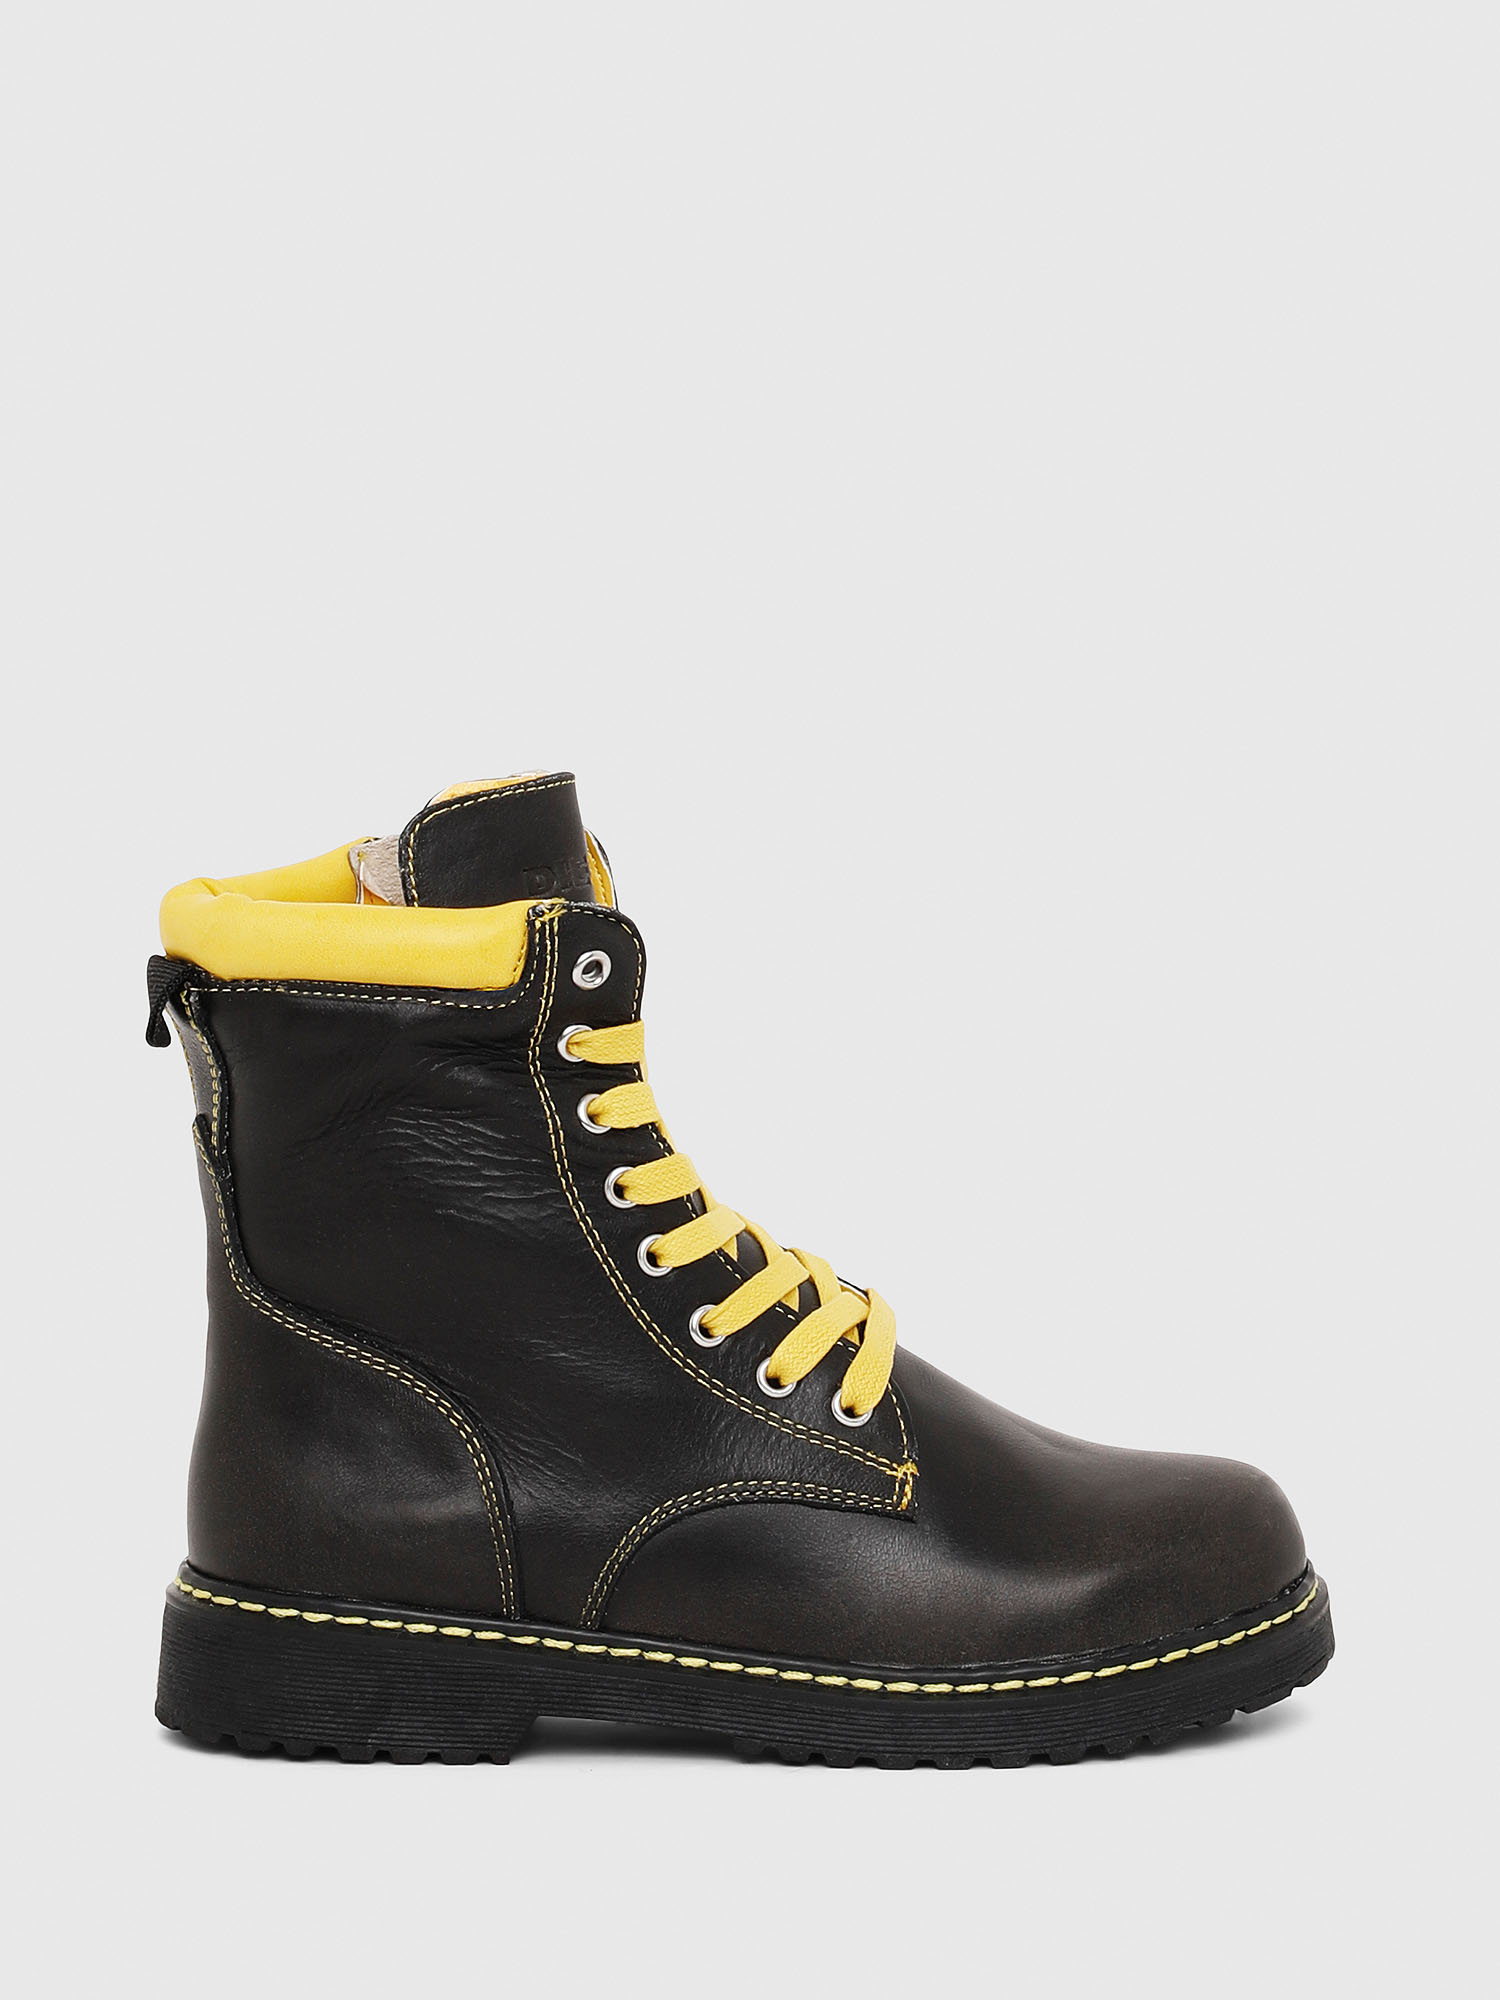 Diesel - HB LACE UP 04 CH,  - Footwear - Image 1